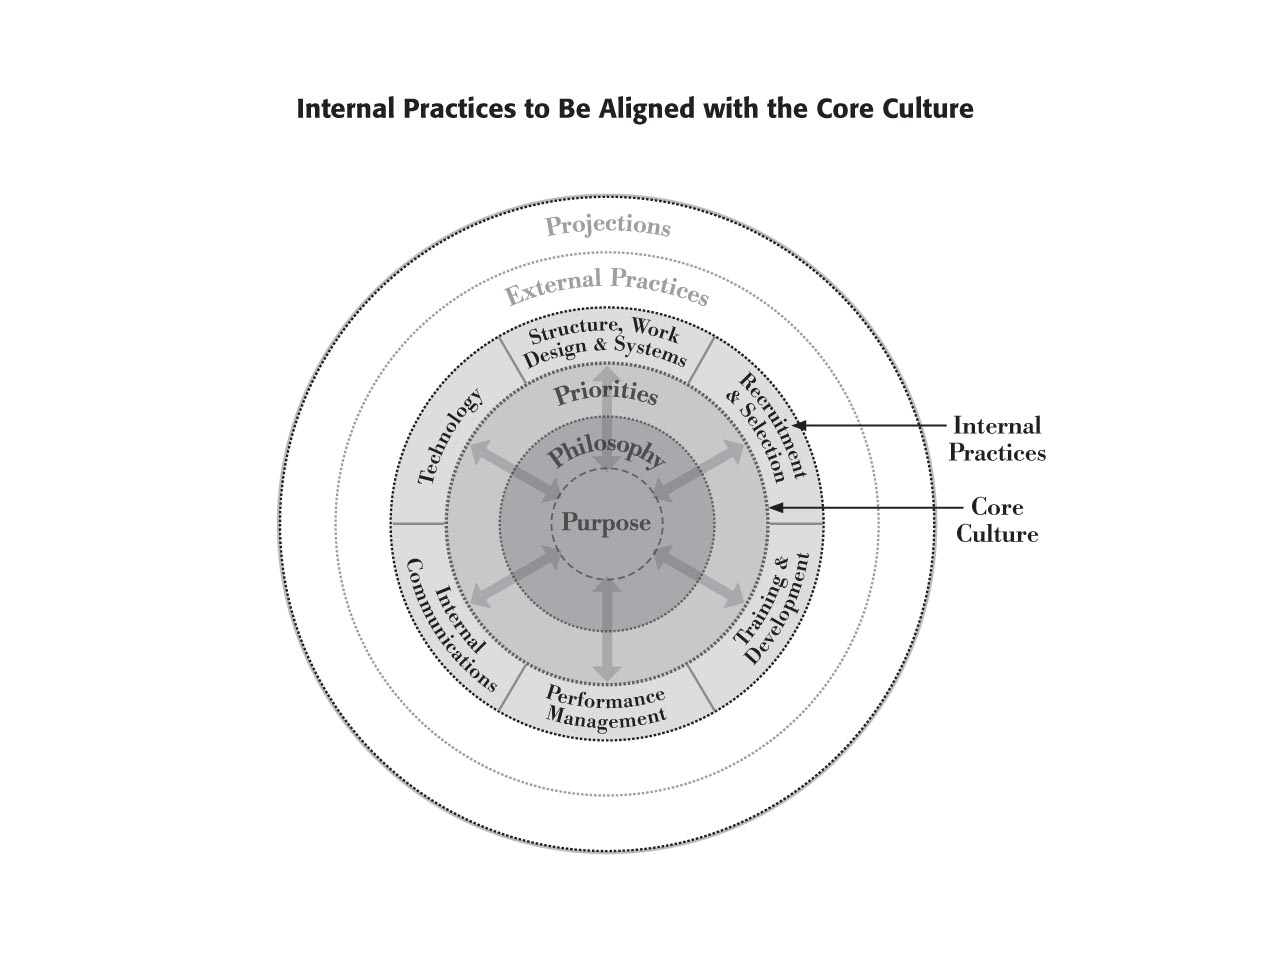 organizational practices sheila margolis internal practices